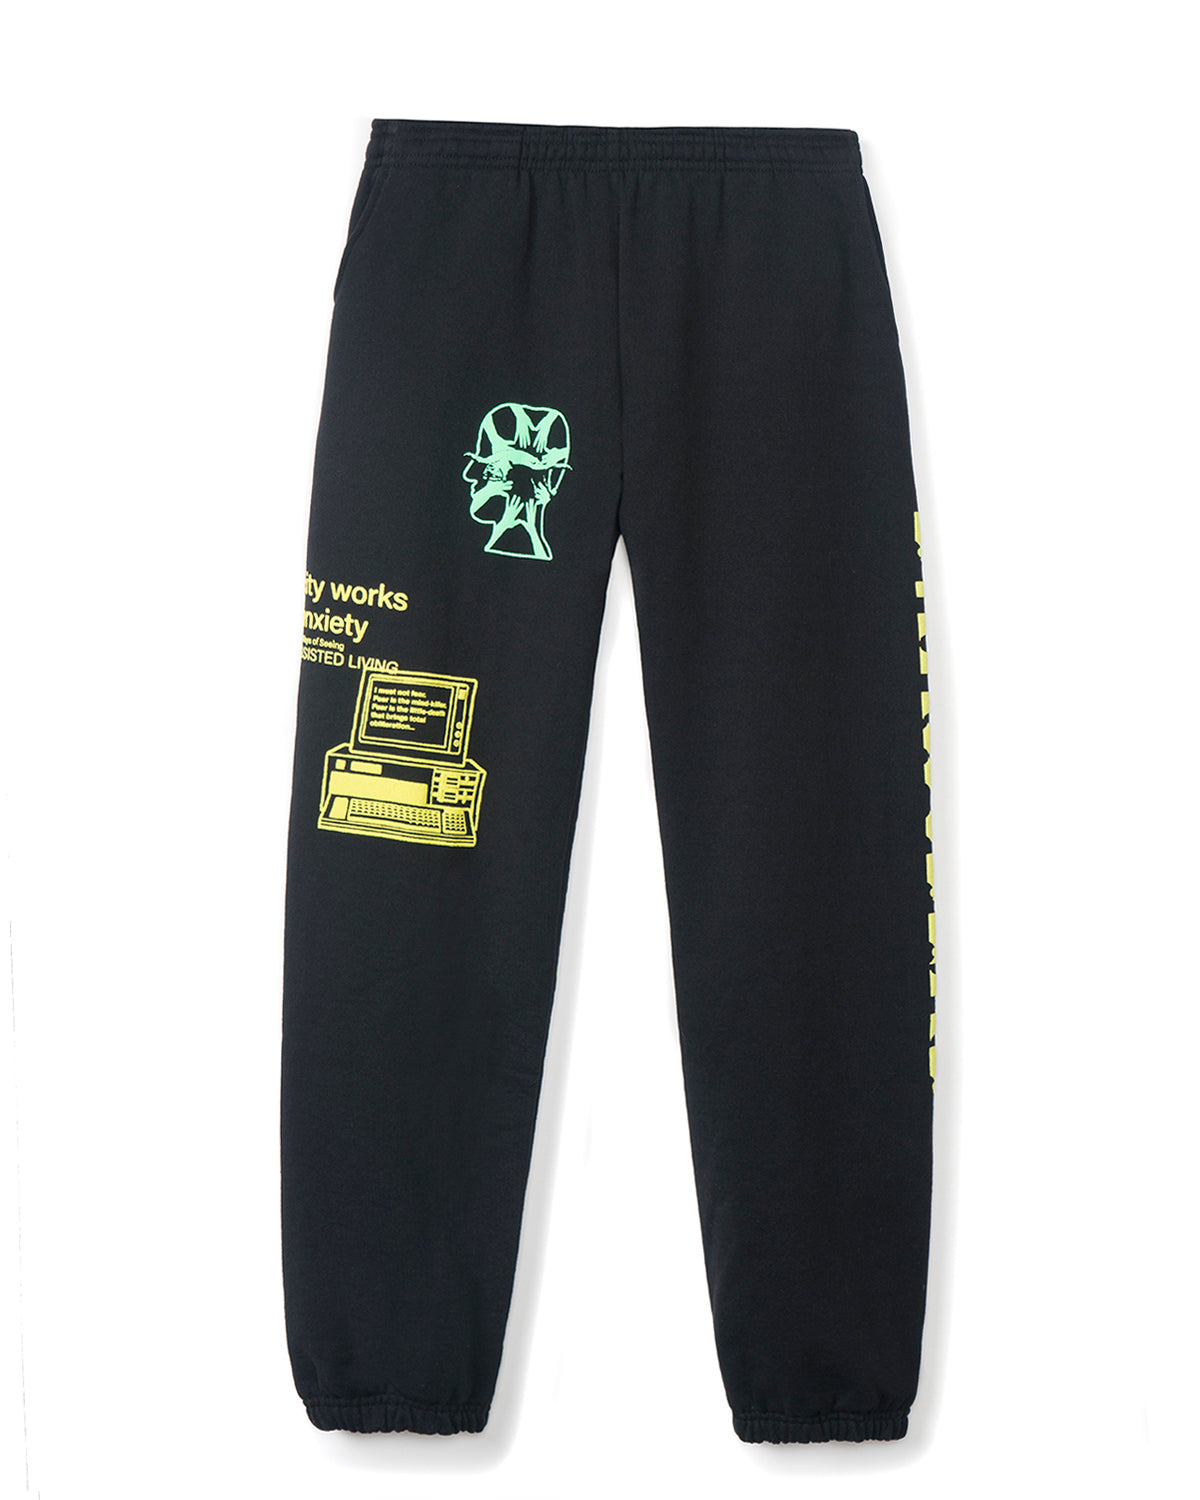 Full of Germs Sweatpants - Black